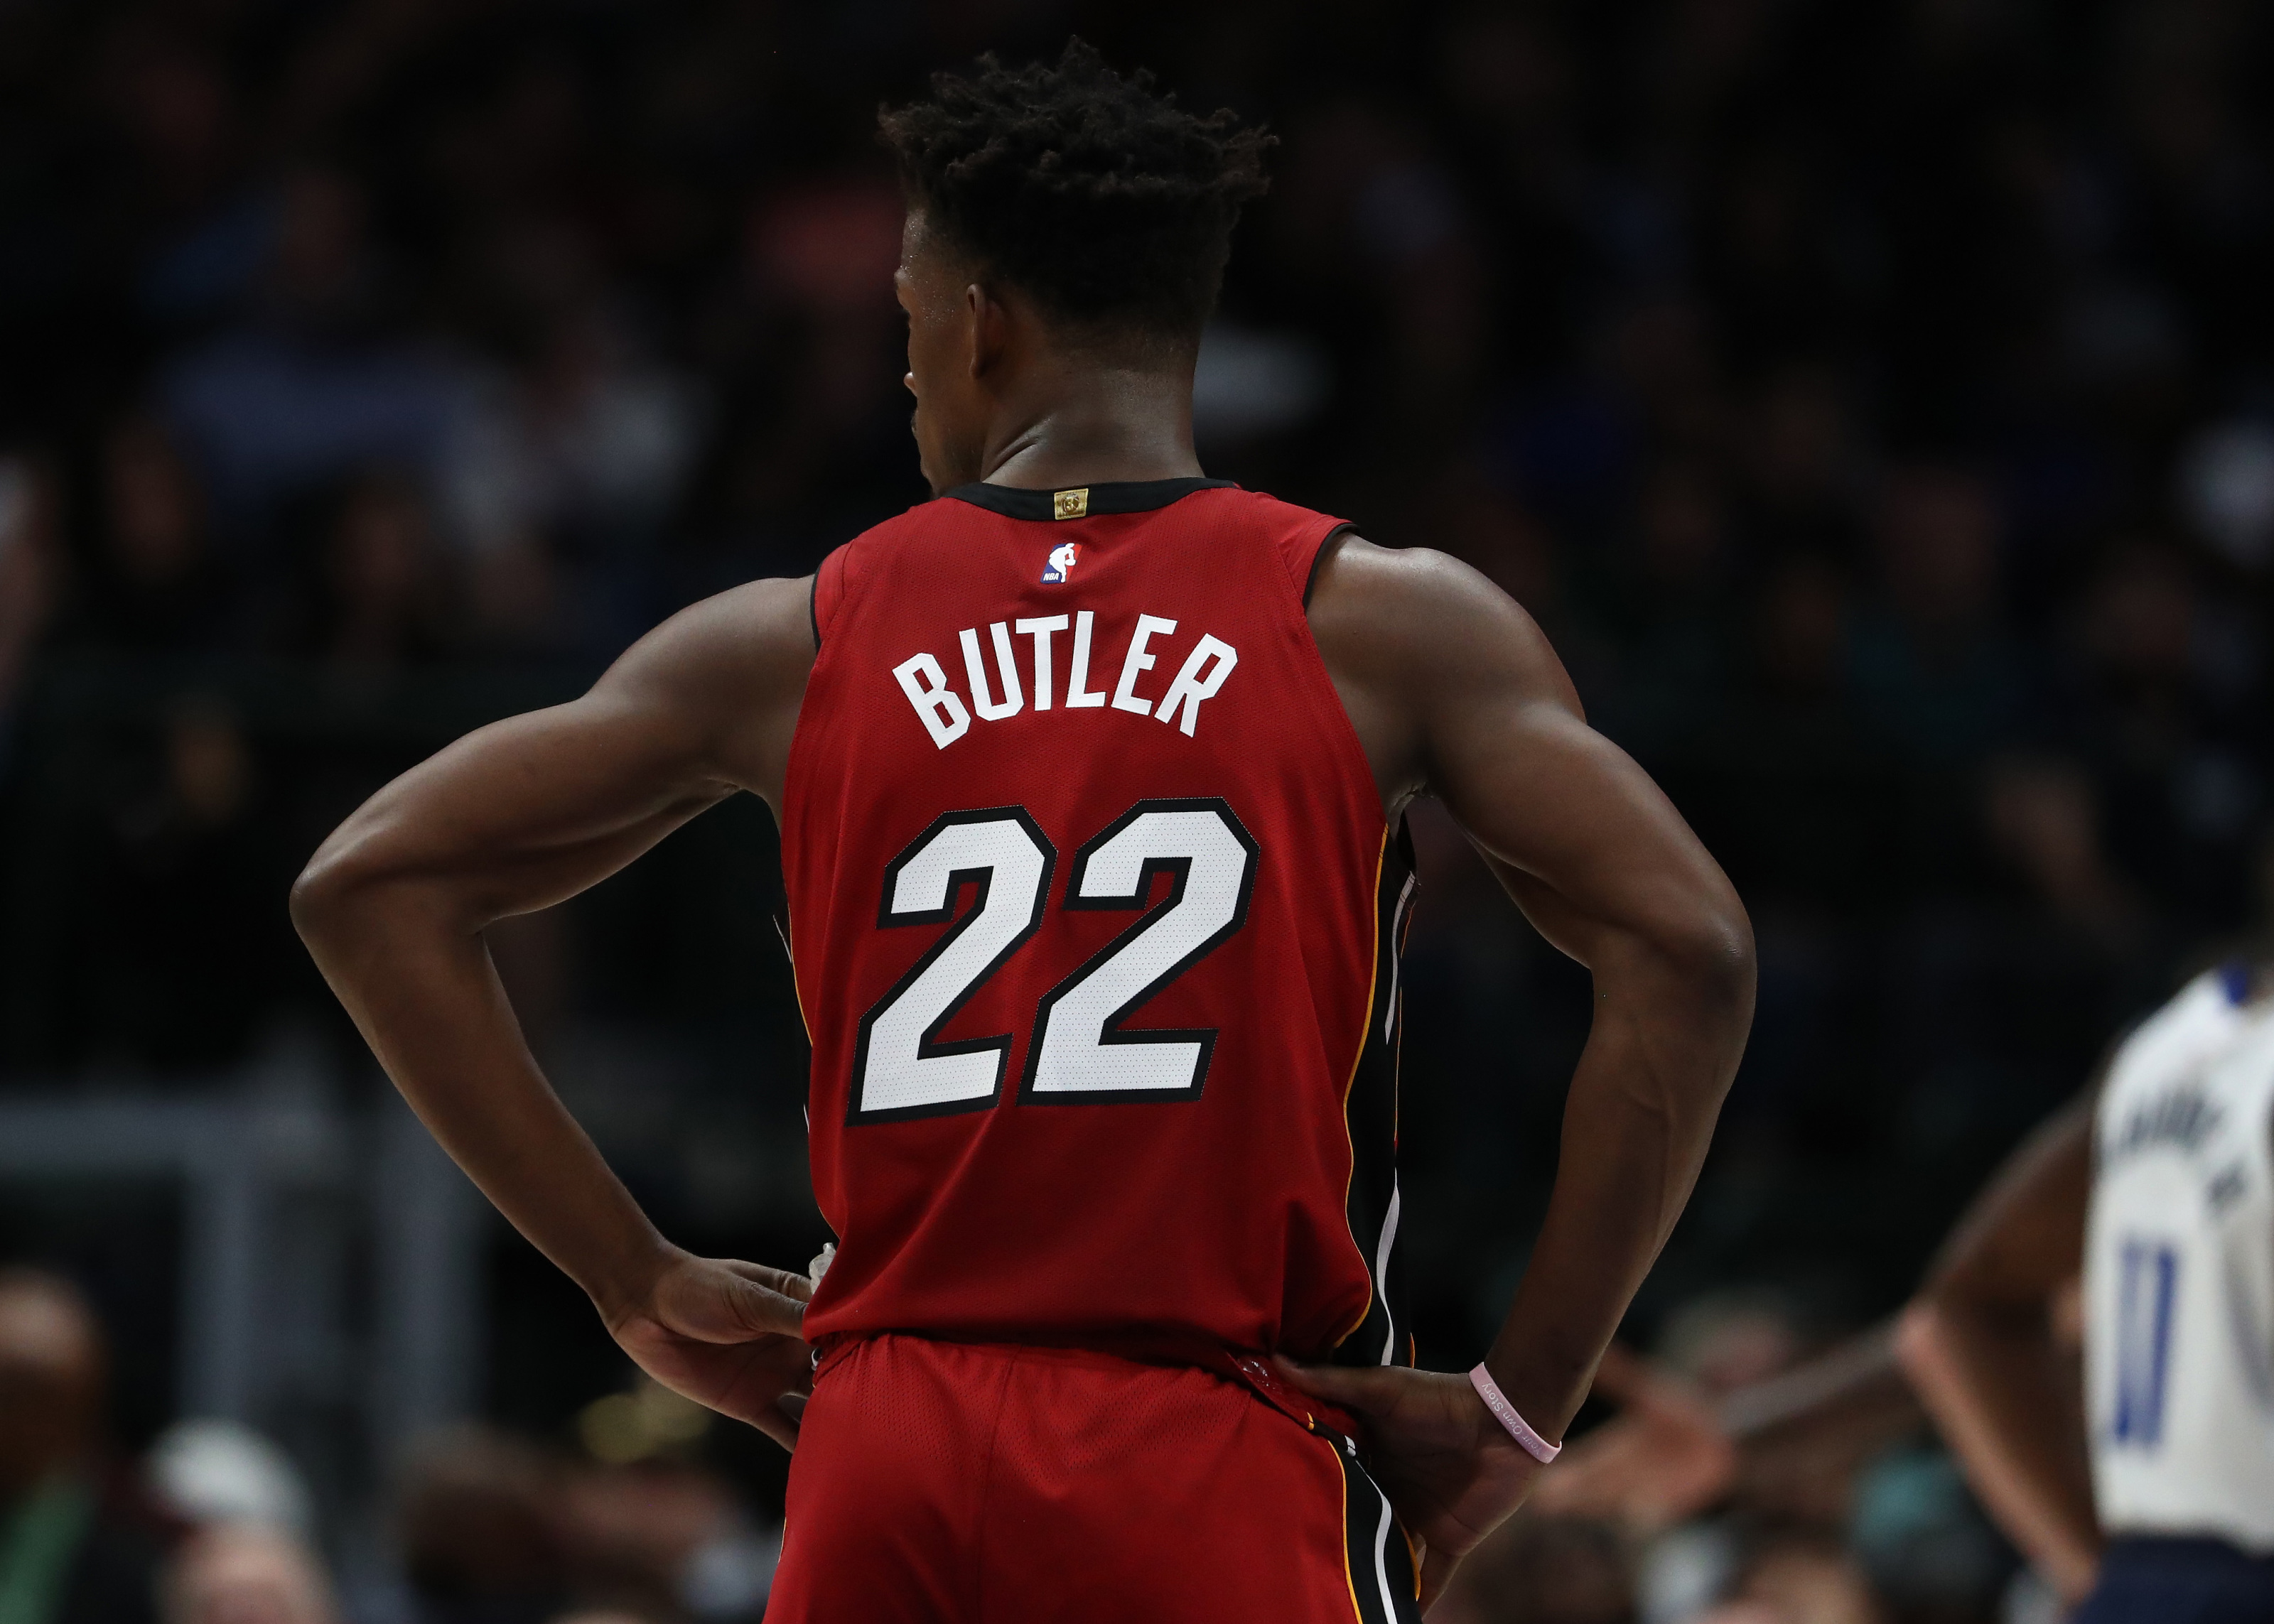 Miami Heat: Jimmy Butler triple doubles against Mavericks according to NBA 2K